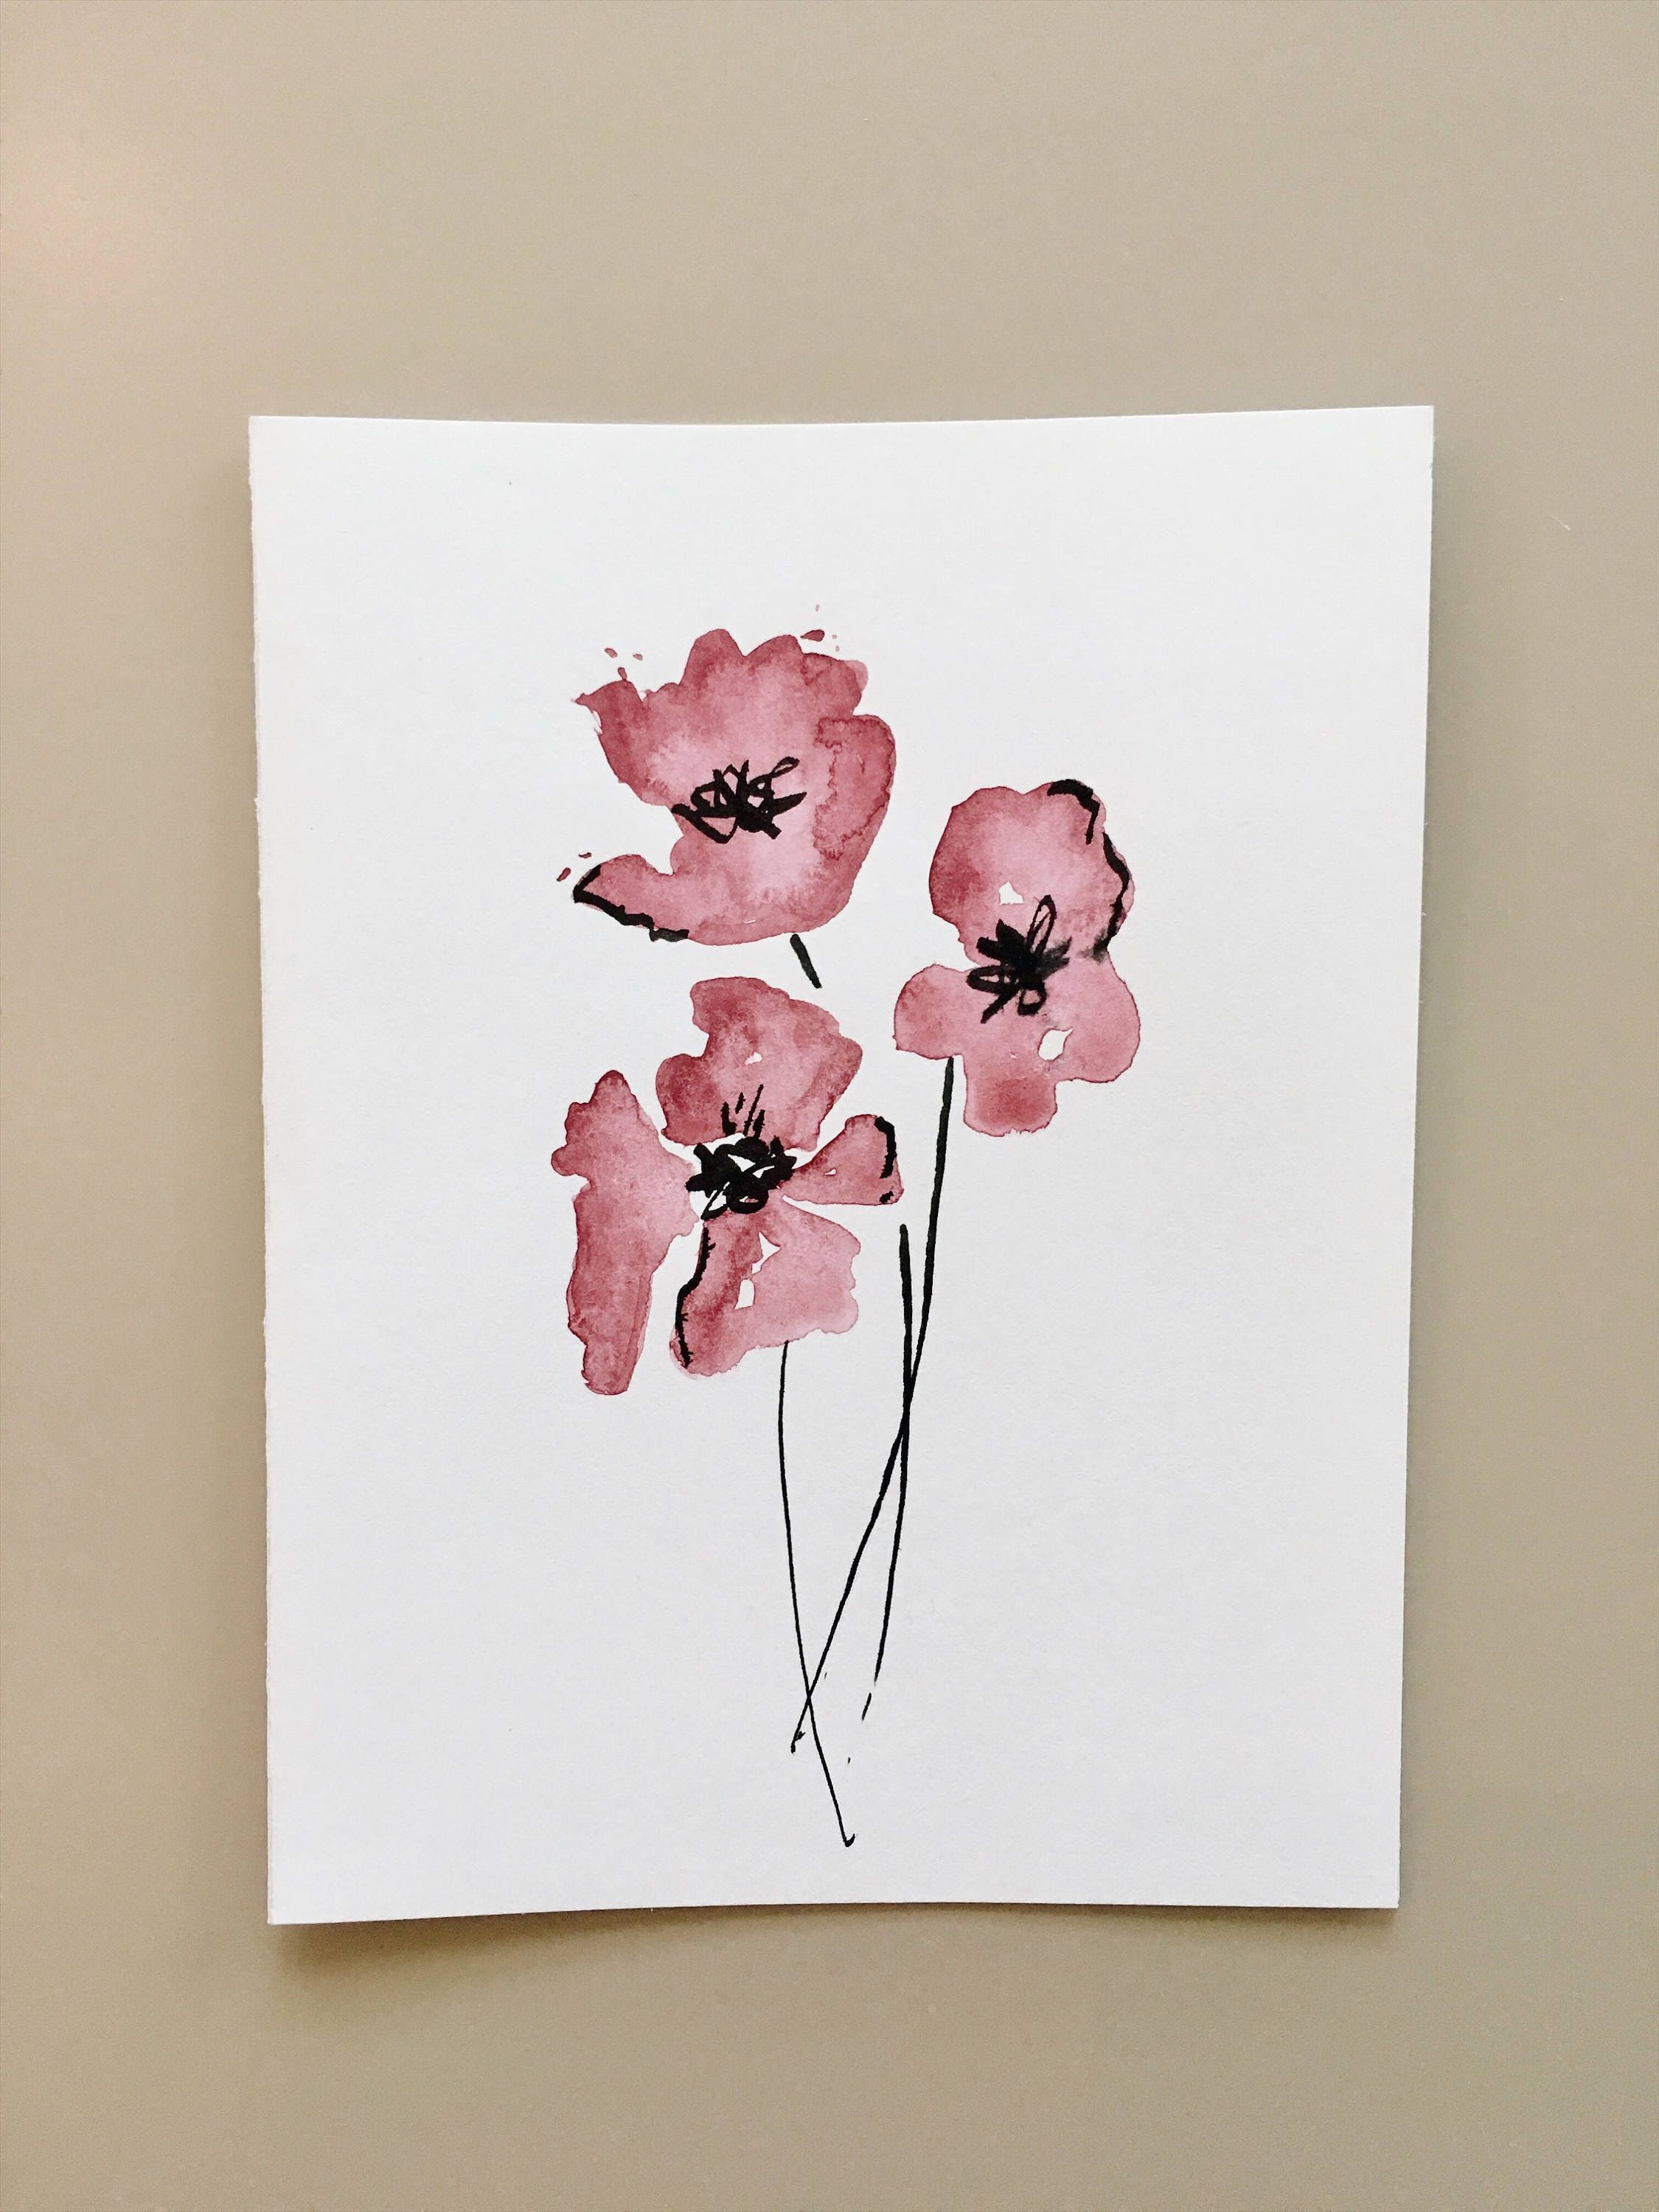 Flower watercolor greeting card hand painted card handmade flower watercolor greeting card hand painted card handmade watercolor paint watercolor card watercolor painted card custom cardflower paint cards m4hsunfo